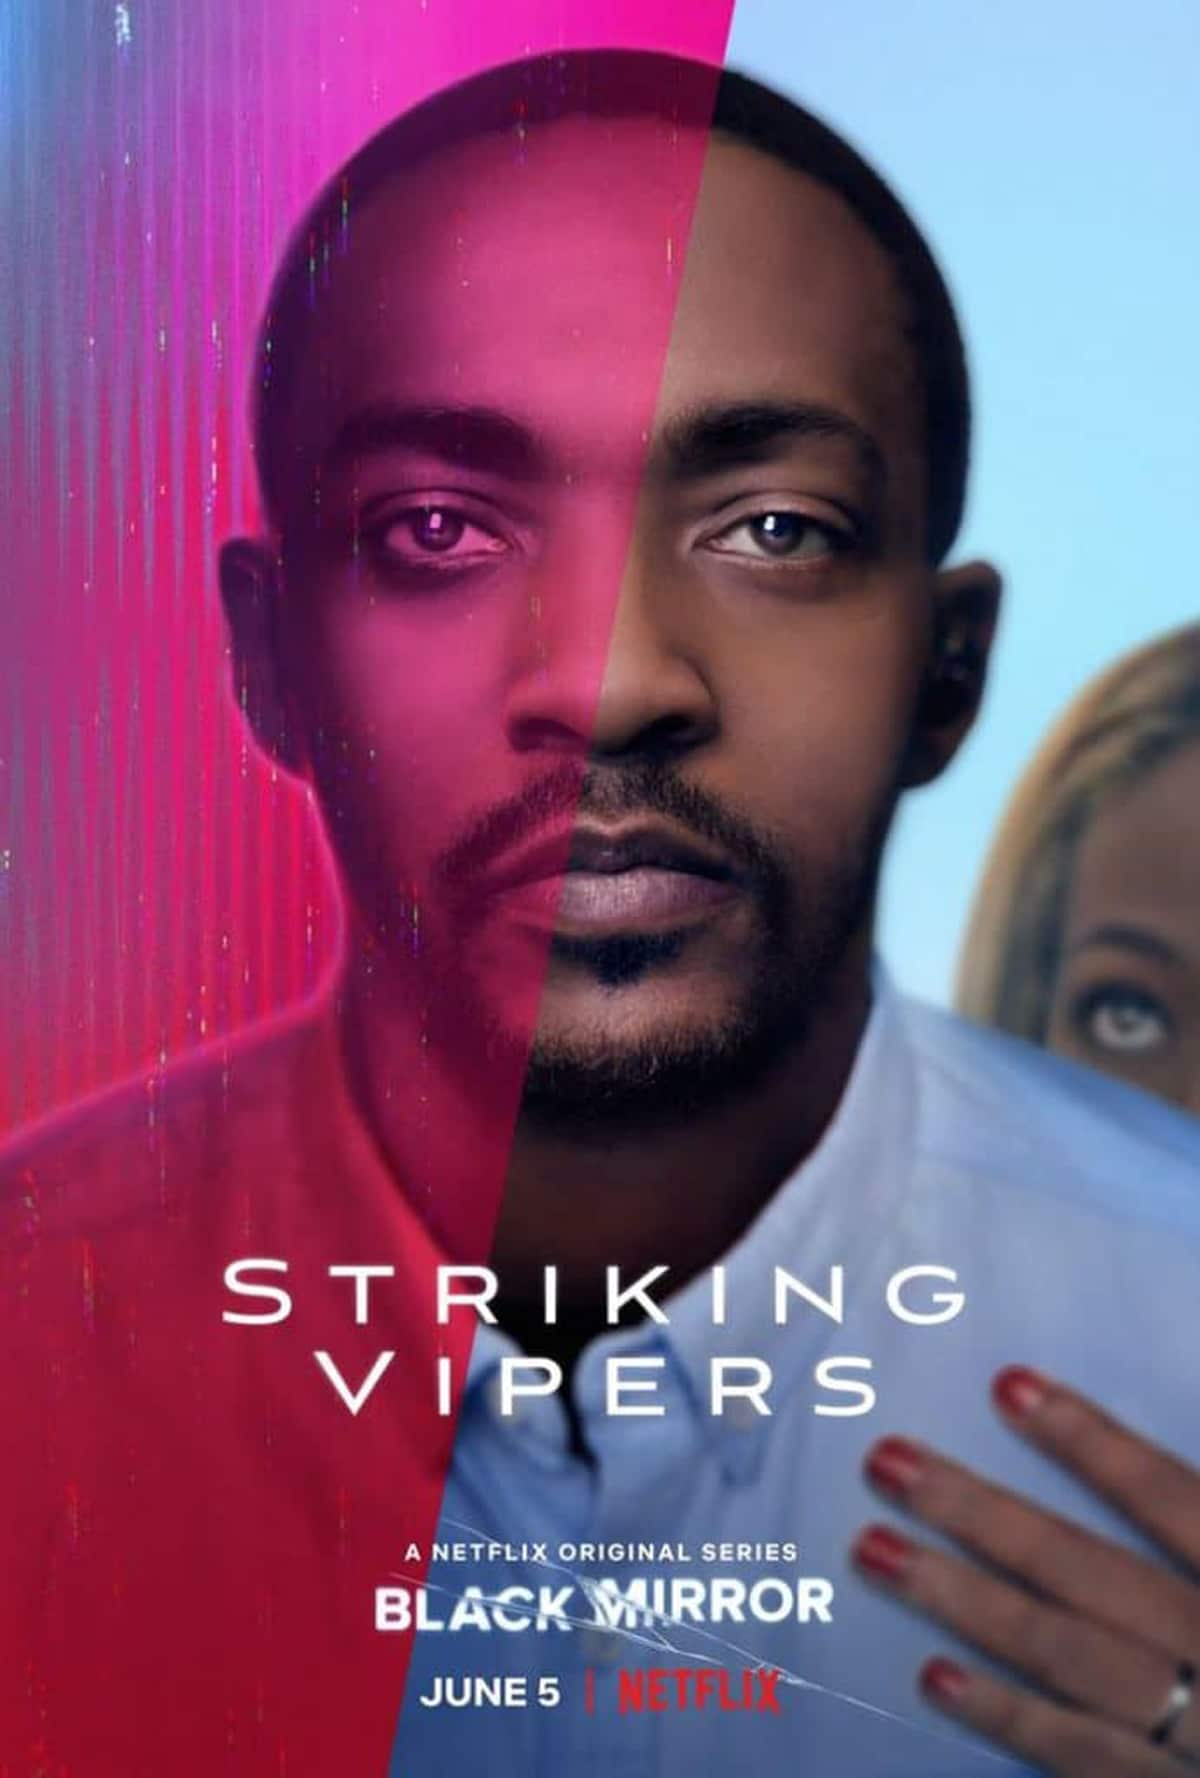 Black Mirror Striking Vipers poster